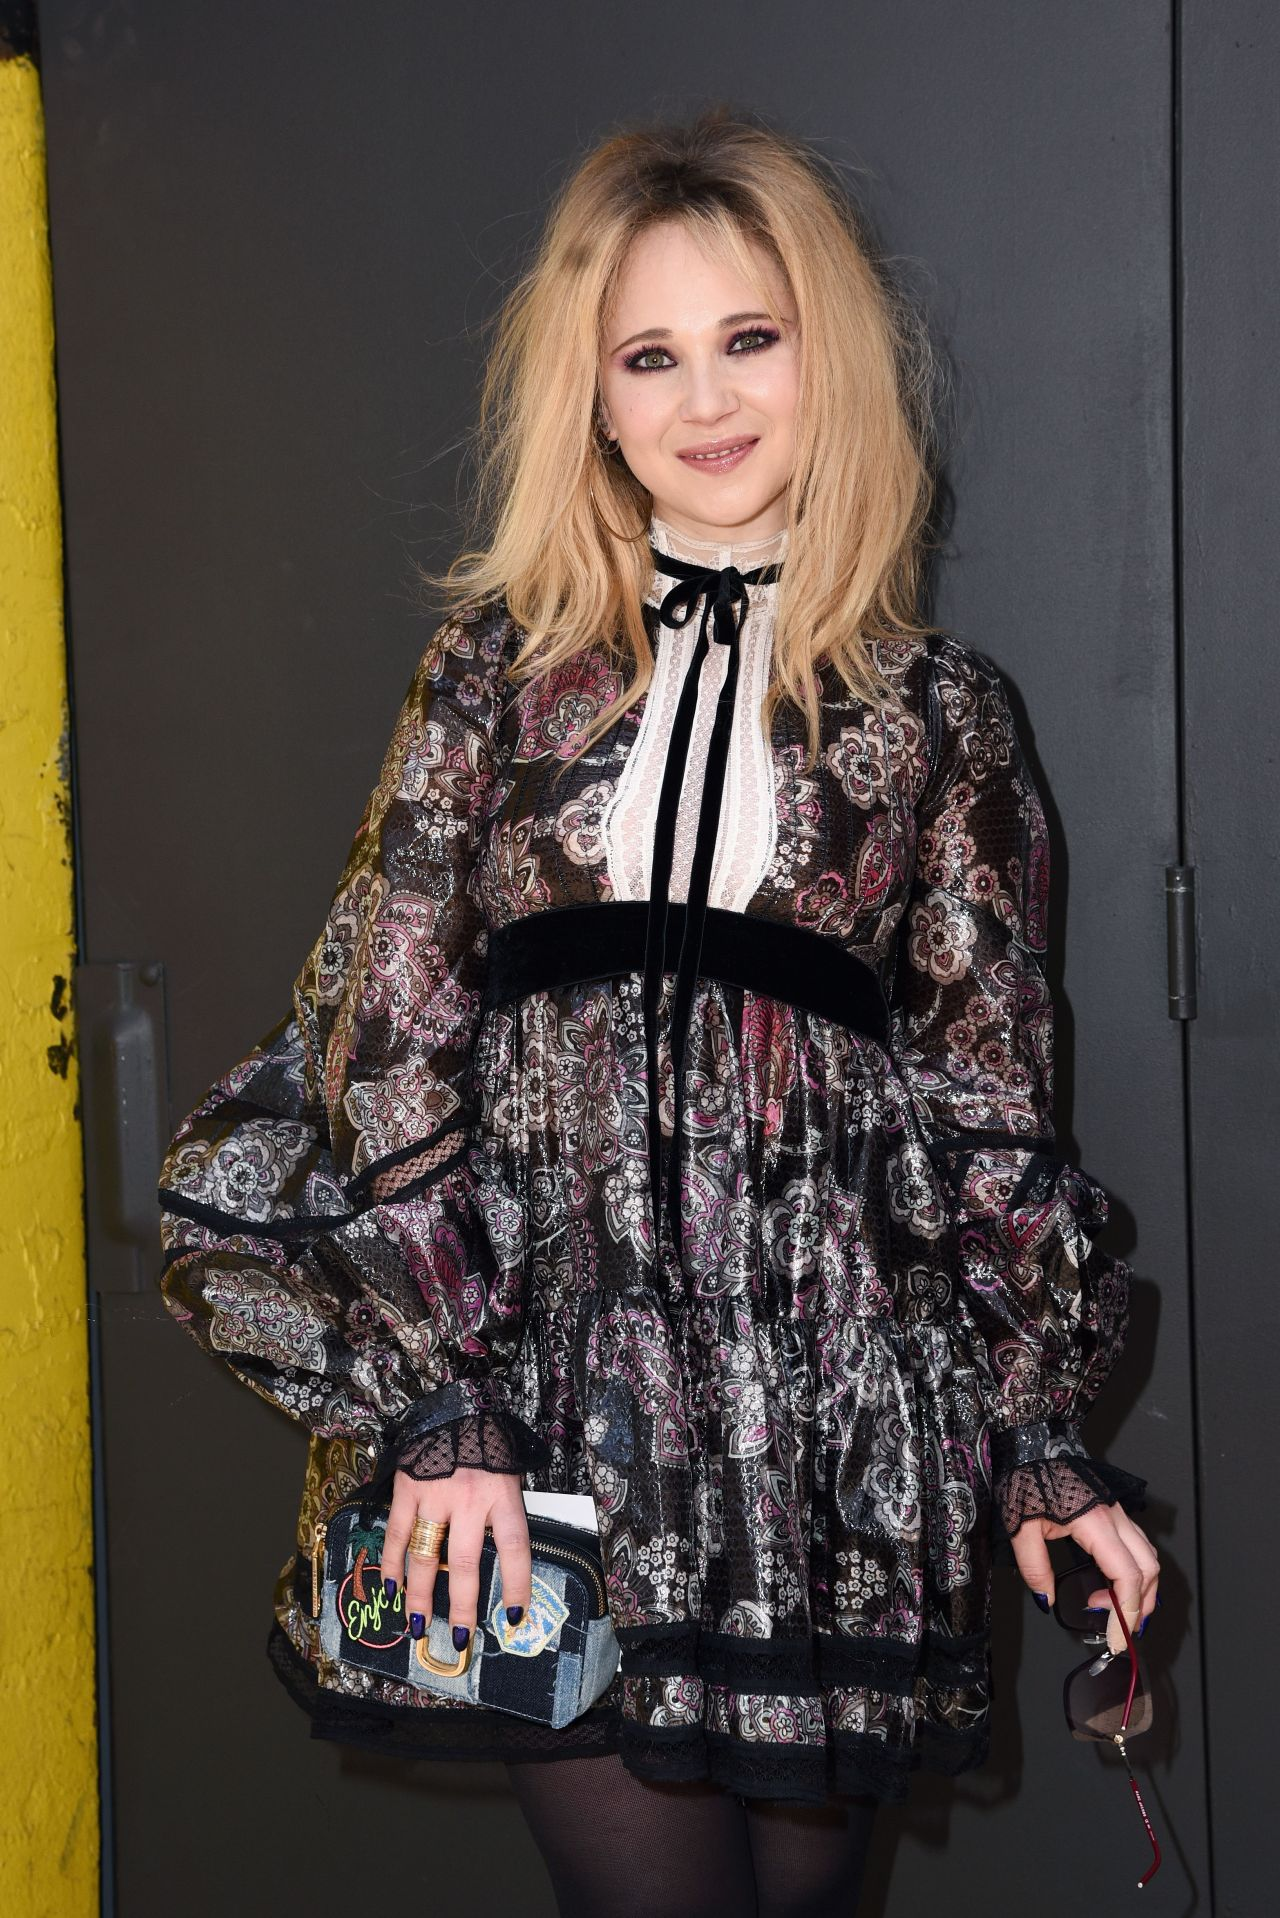 Juno Temple Marc Jacobs Fashion Show In Nyc 2 16 2017